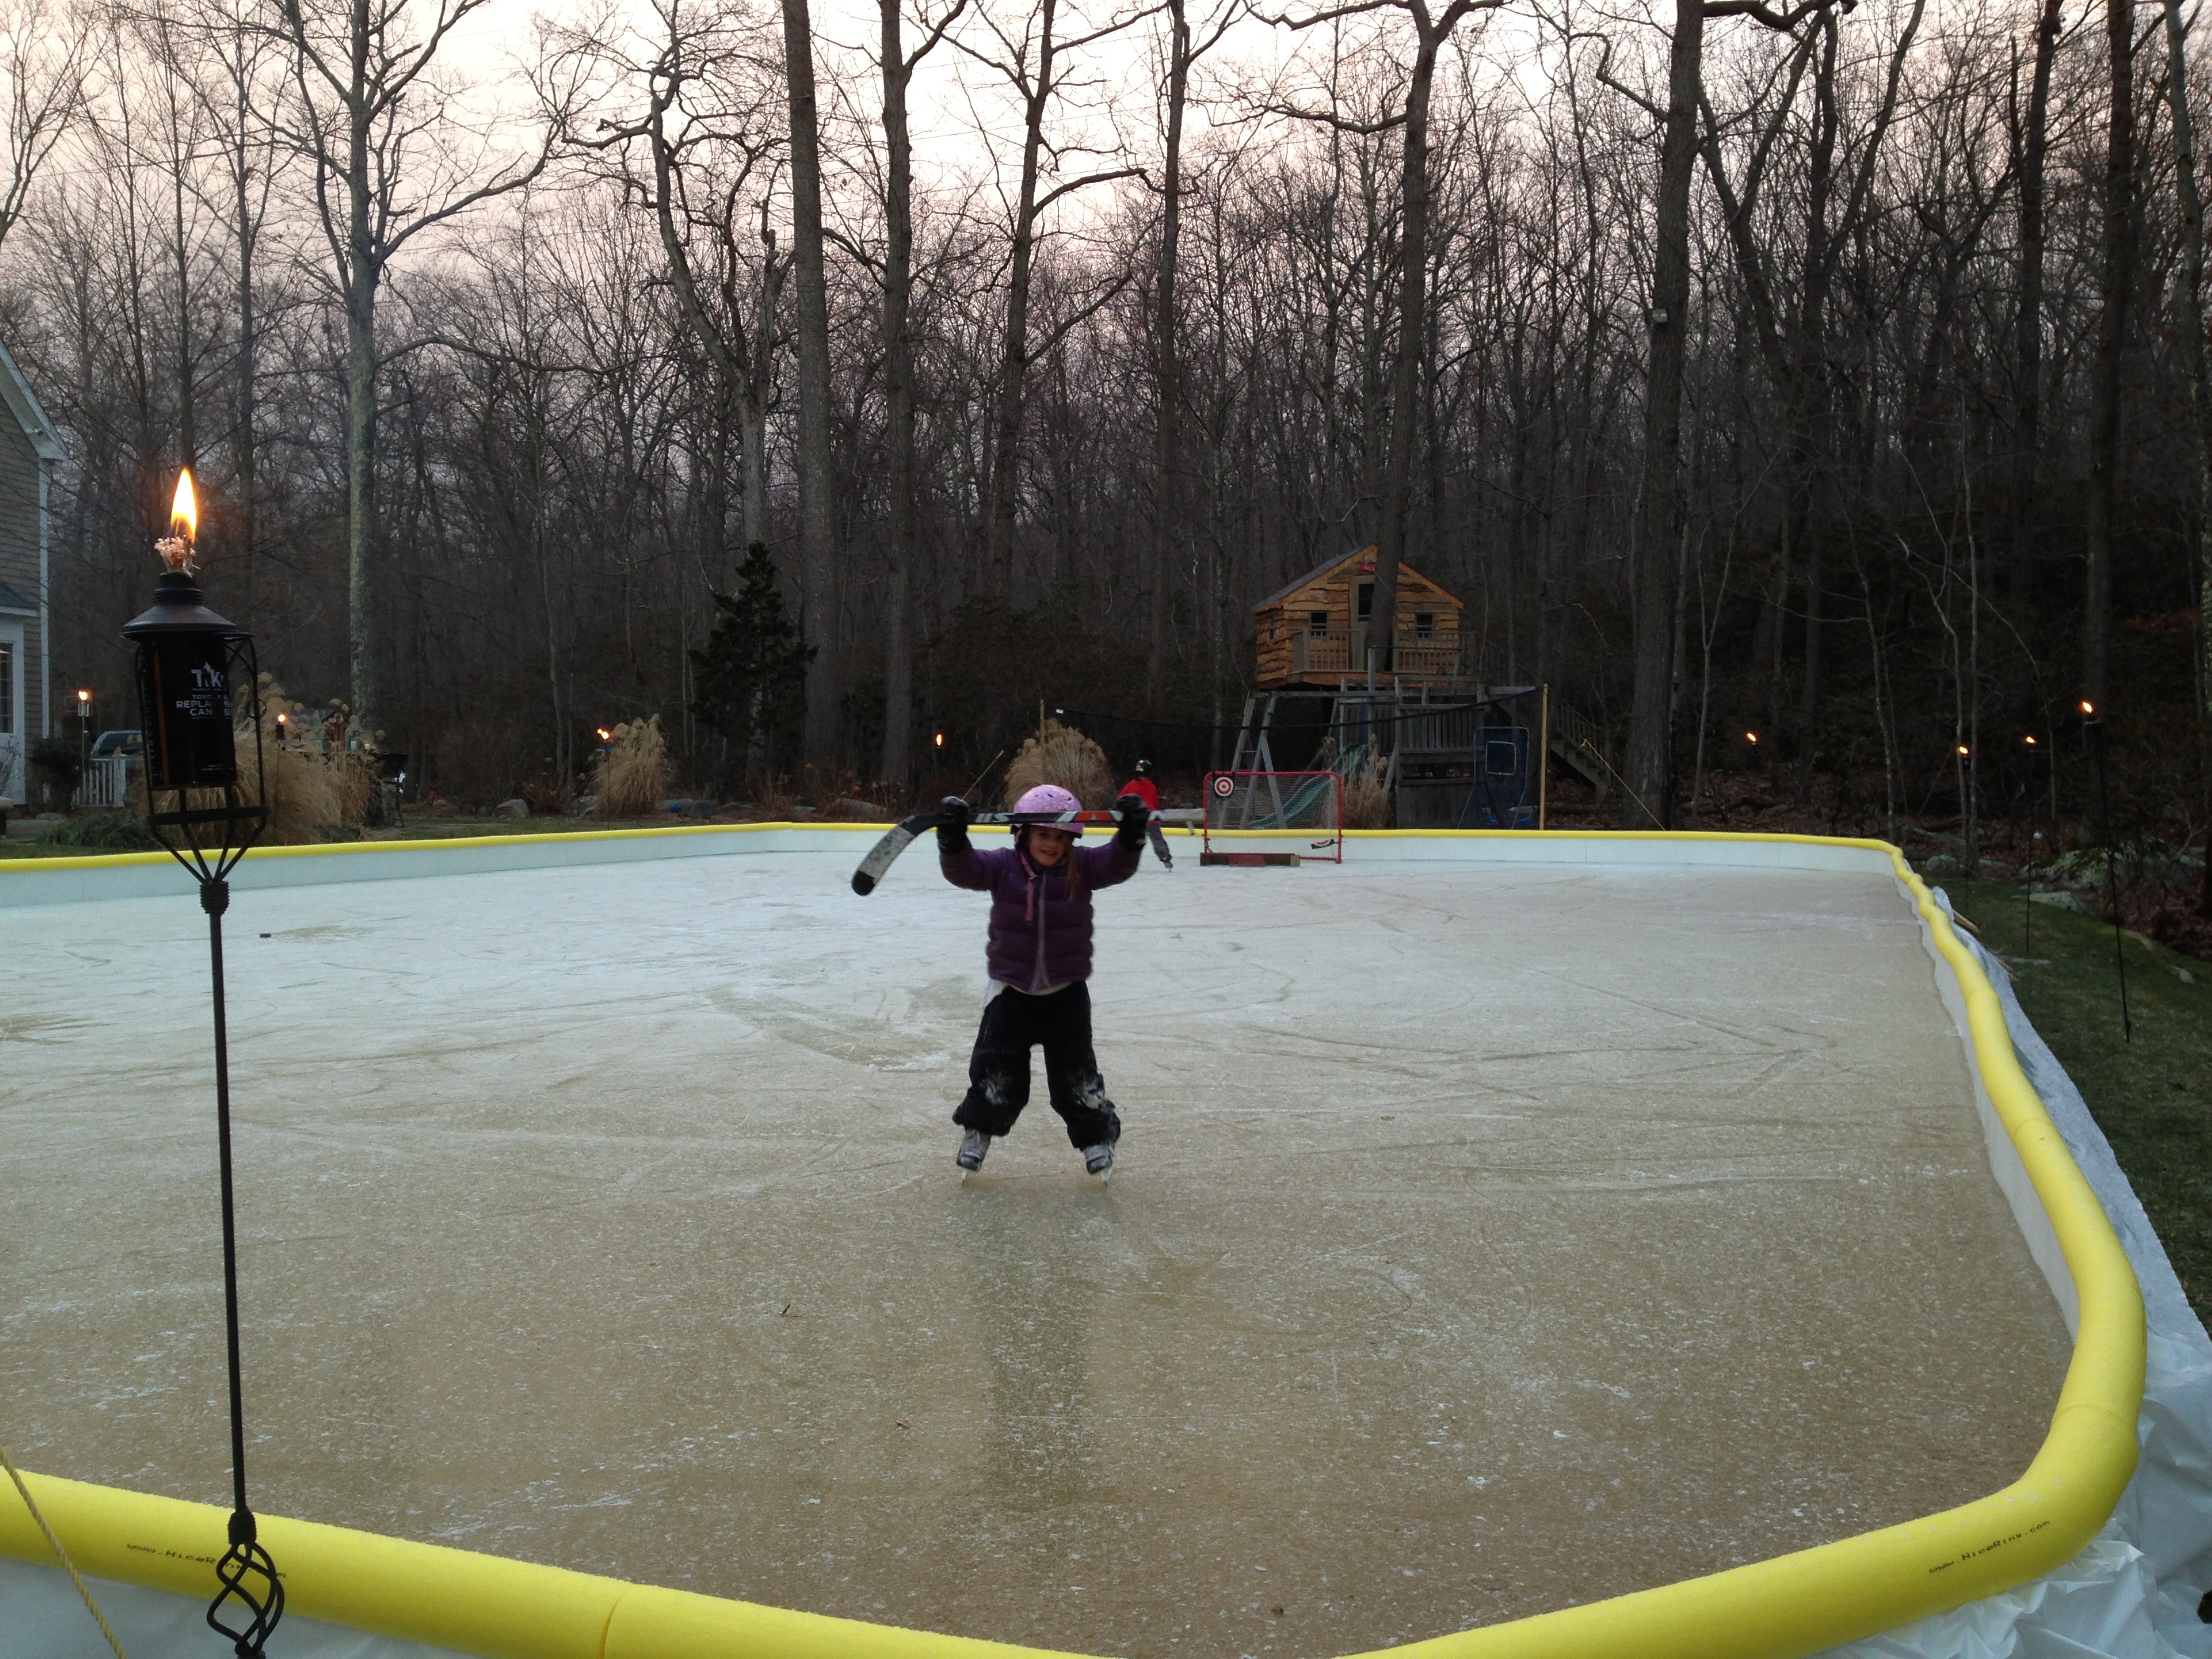 Girl holding up hockey stick on backyard ice rink